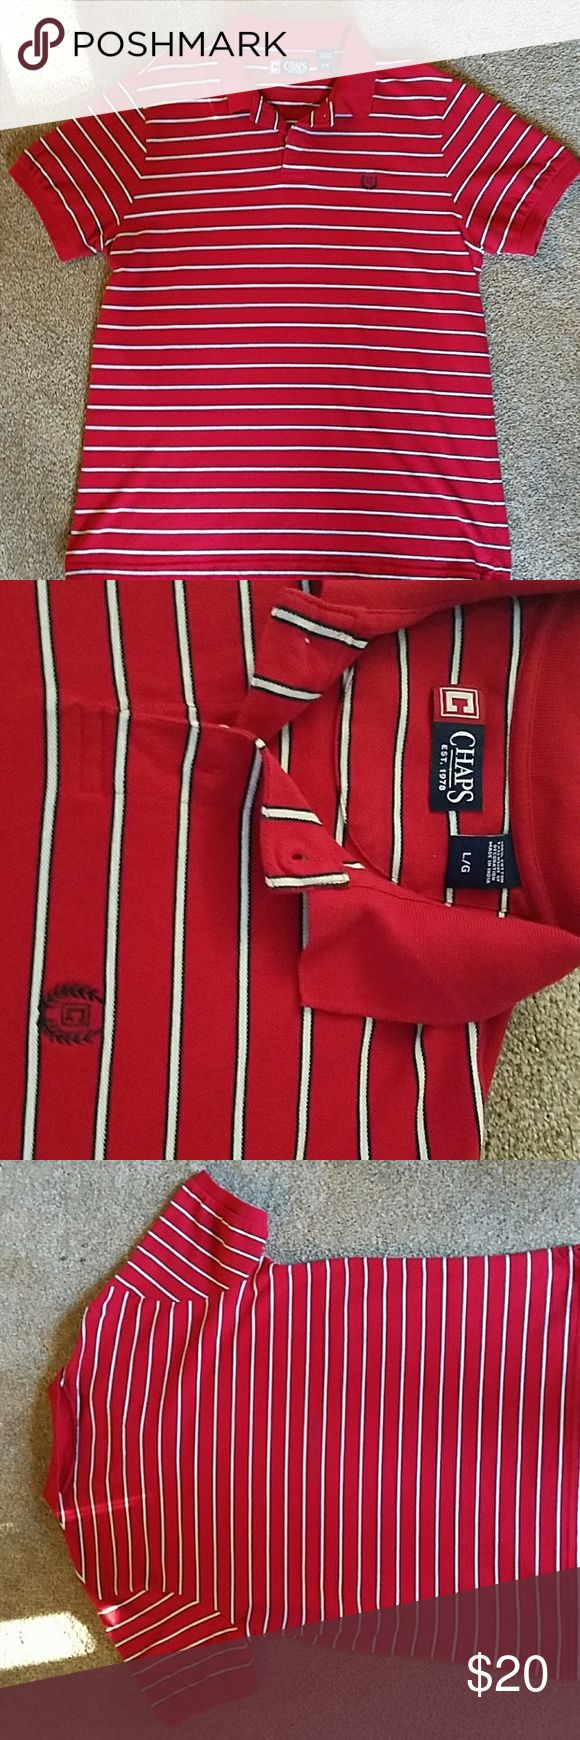 Chaps Ralph Lauren Polo Shirt Red with White and Black Stripes Like New Excellent Condition Very Cool Ralph Lauren Shirts Polos